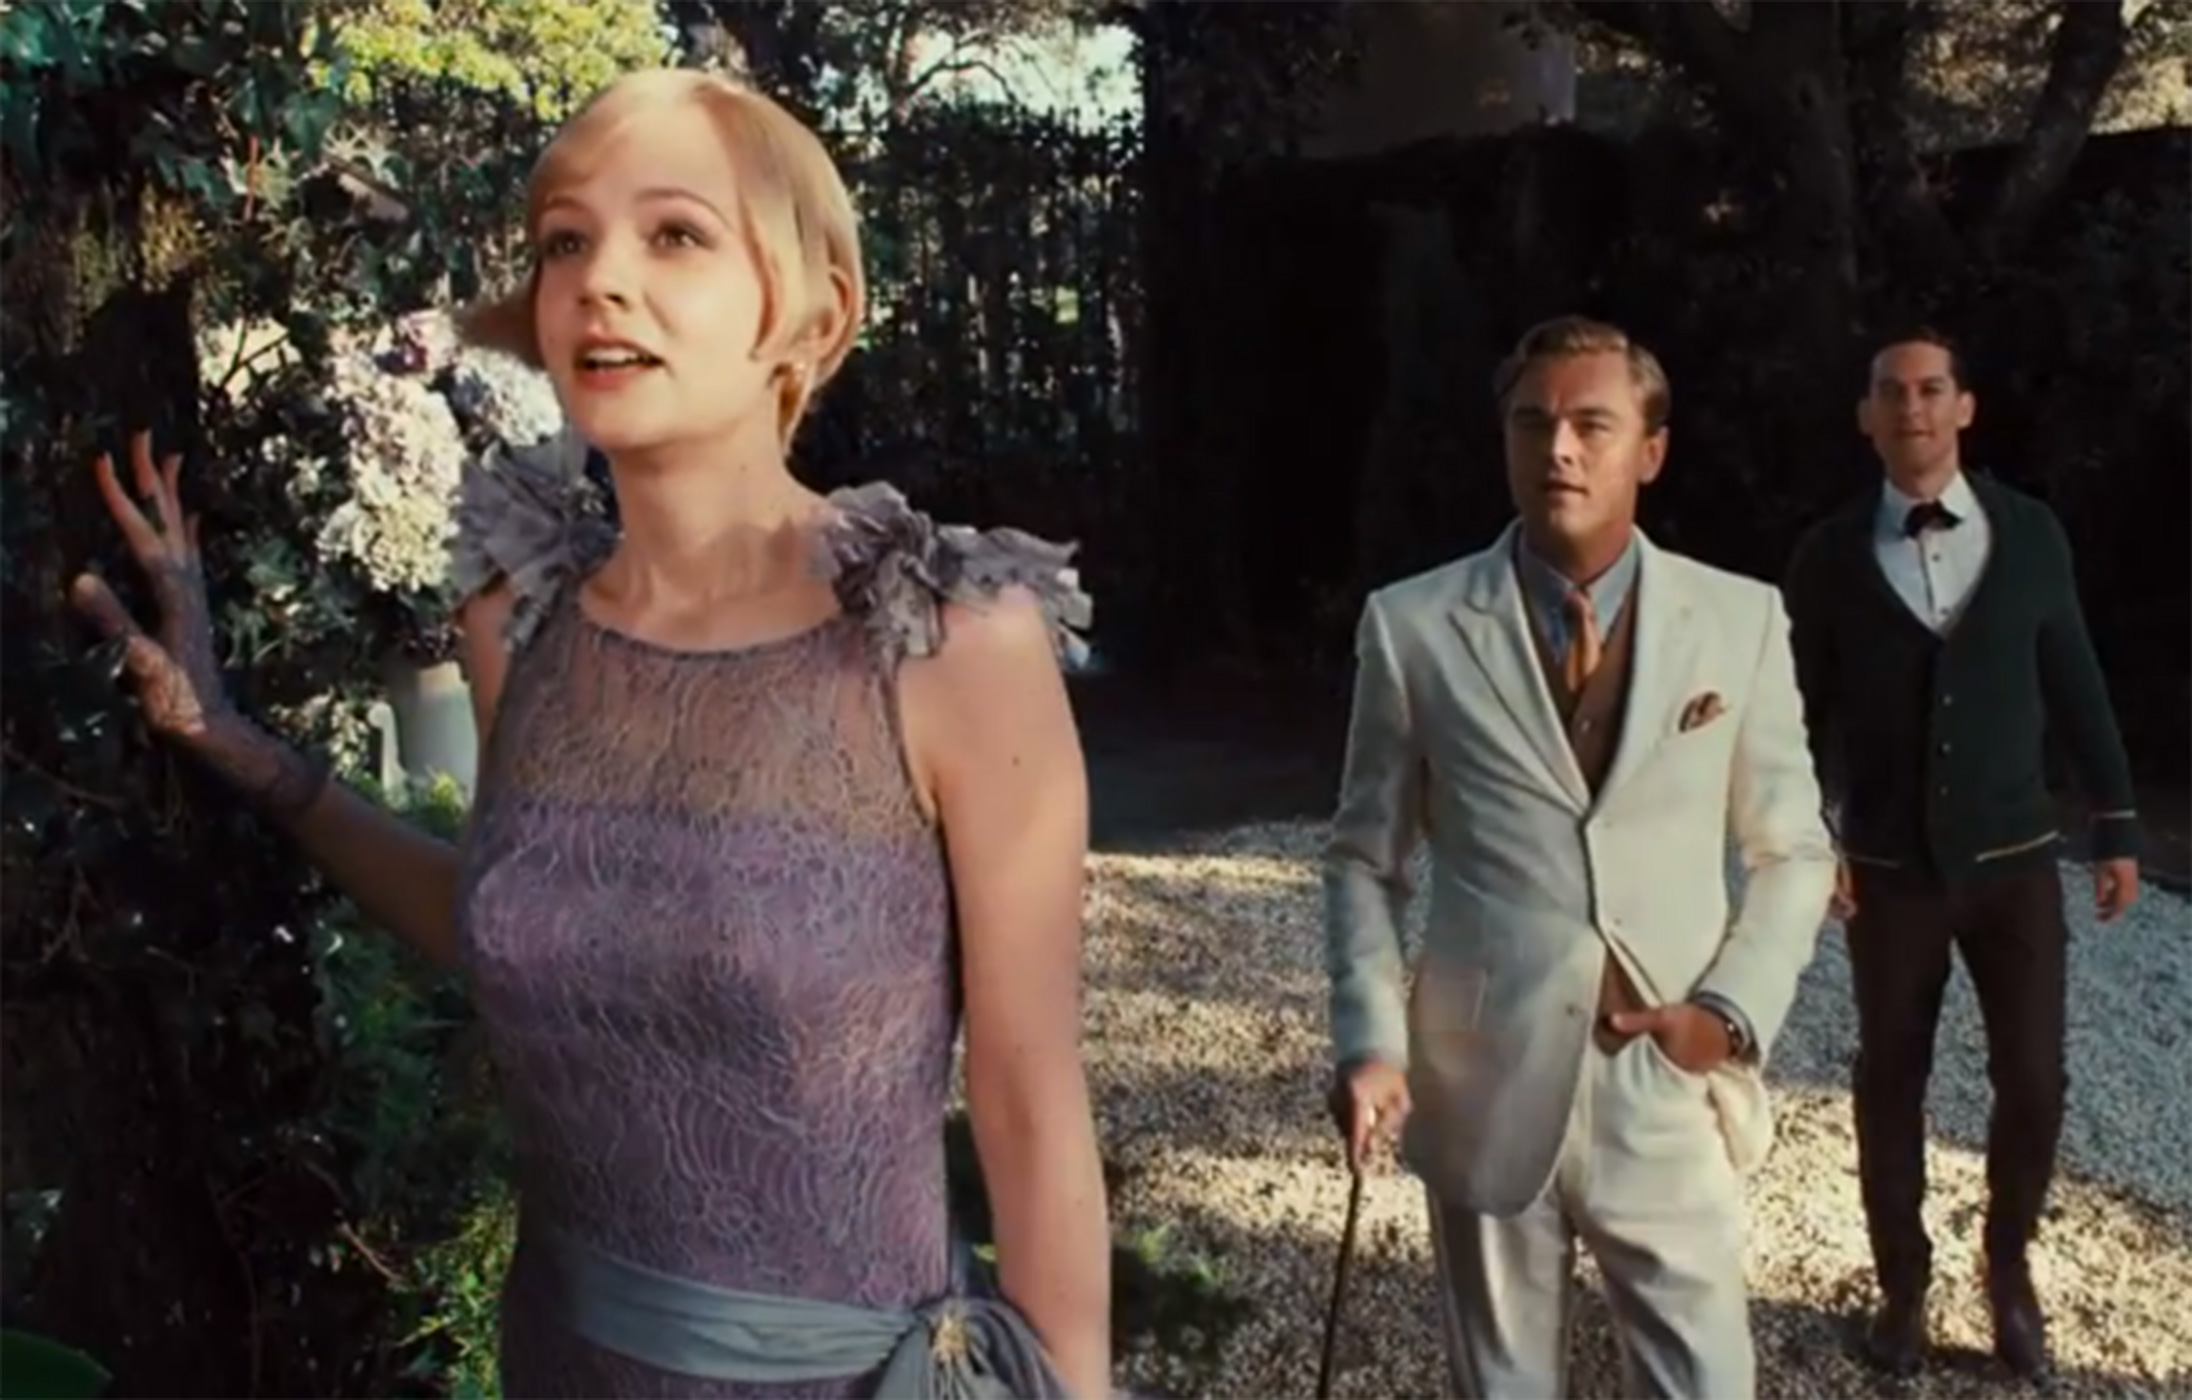 The Great Gatsby: 9 Big Differences Between The Book And Movie